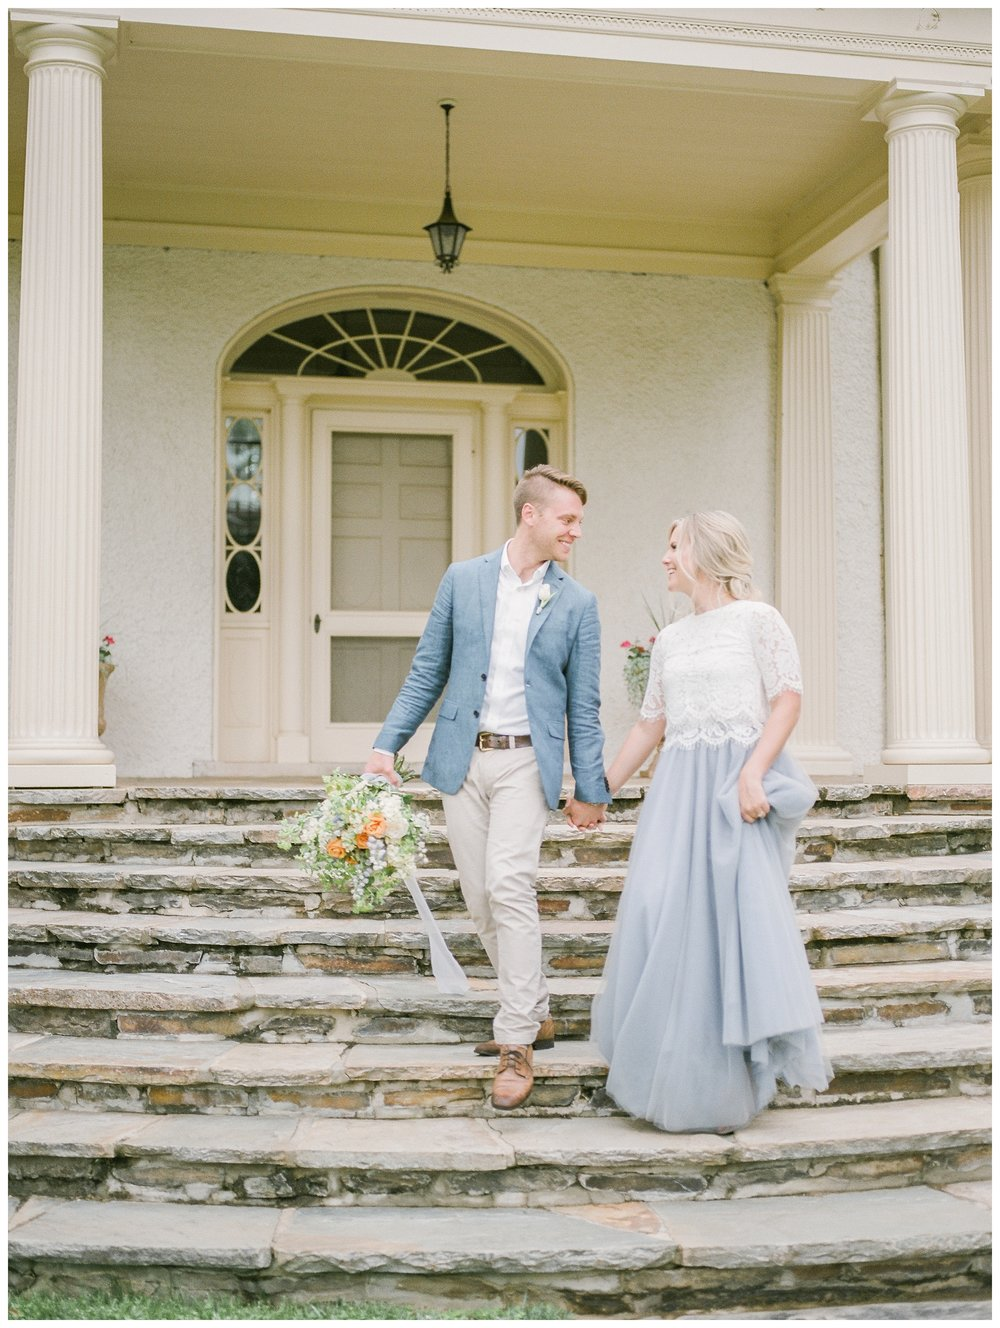 Rust Manor Wedding | Virginia Wedding Photographer Kir Tuben_0009.jpg